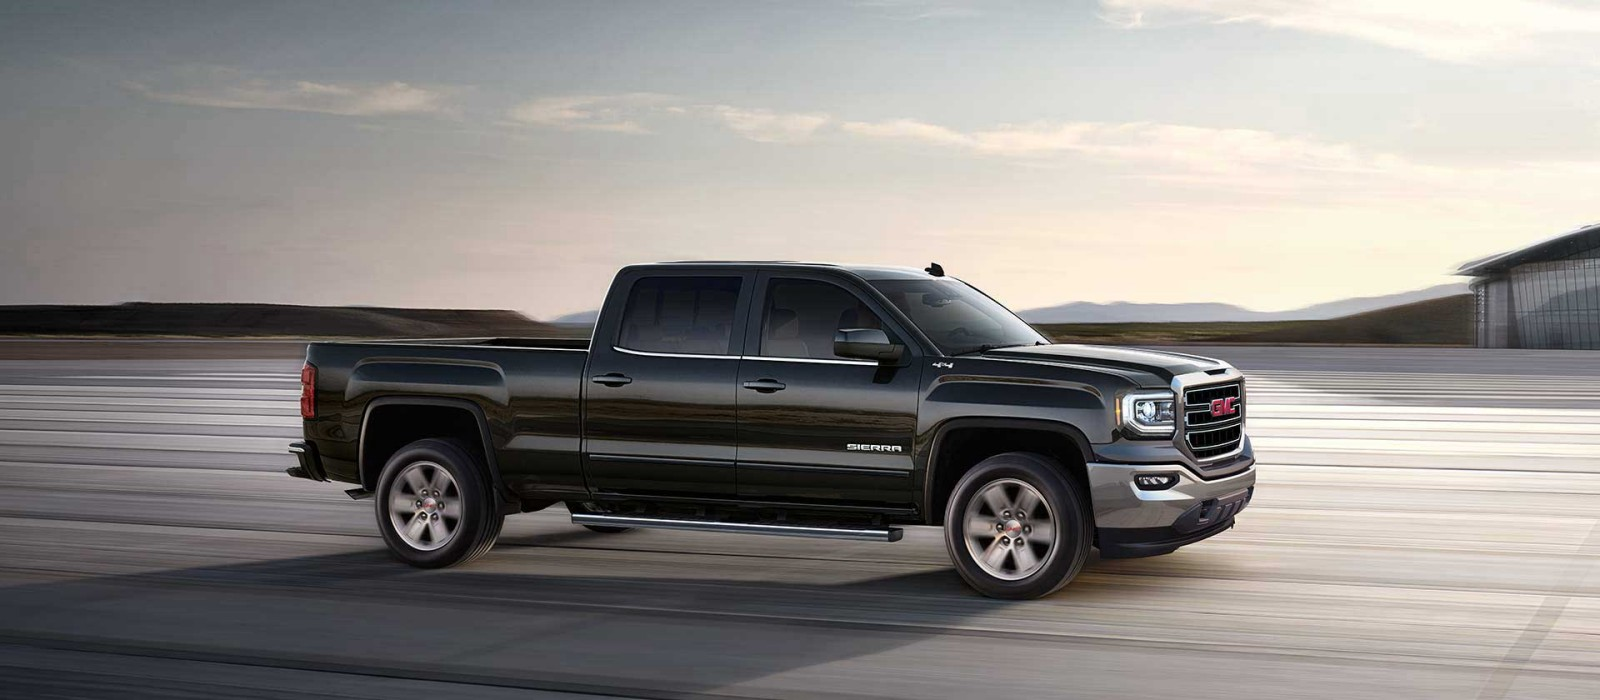 lease crew all information gmc are deals forums up sierra a thanks i page for car denali prices and tax leases the in at picked cab az reference discussion just including details here